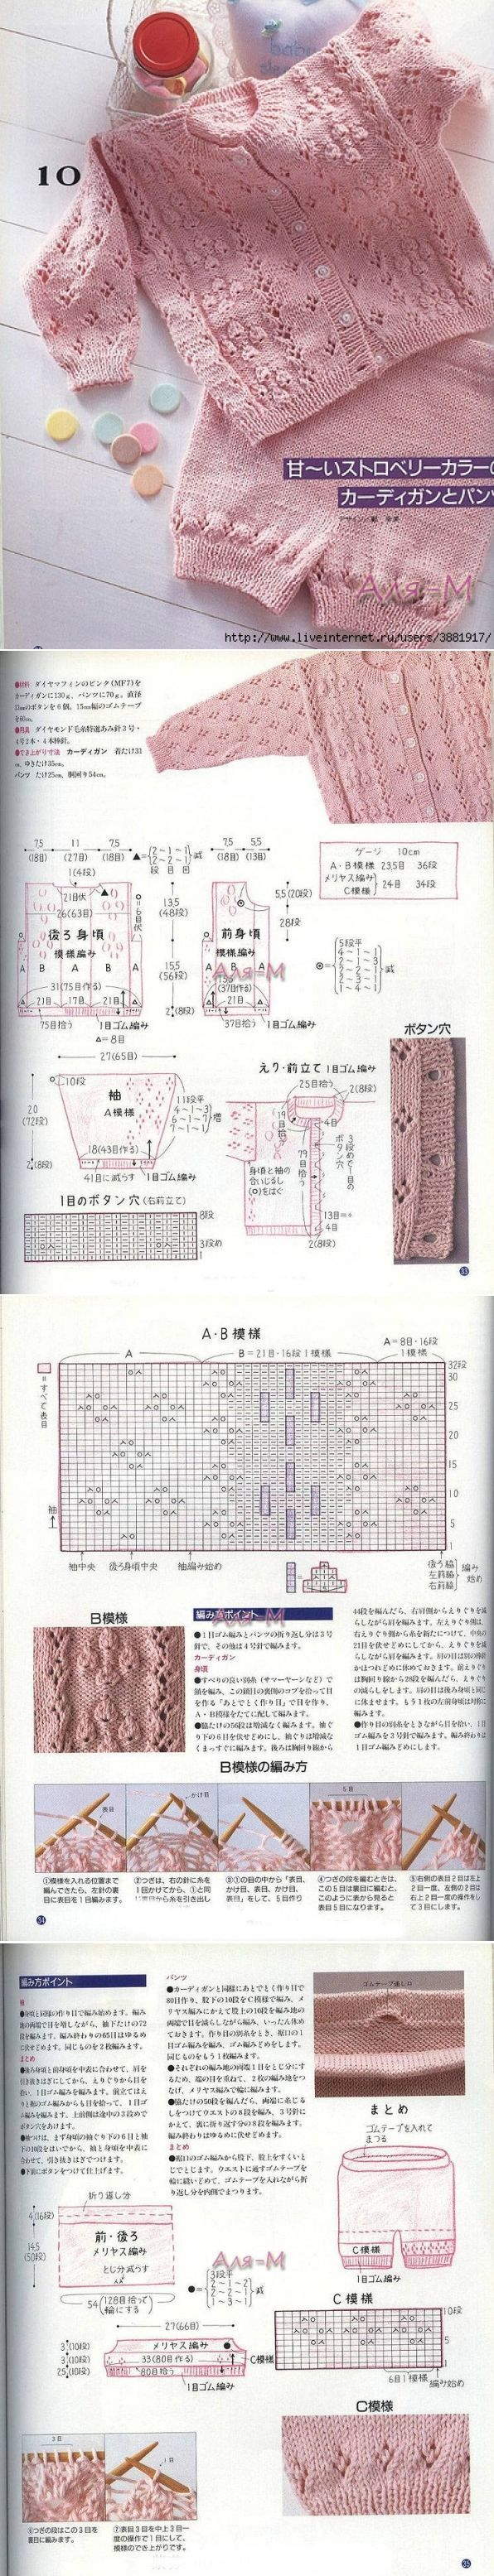 ◇◆◇ Pink knit set of card and pants with charts. From blog elizabethtricoecroche